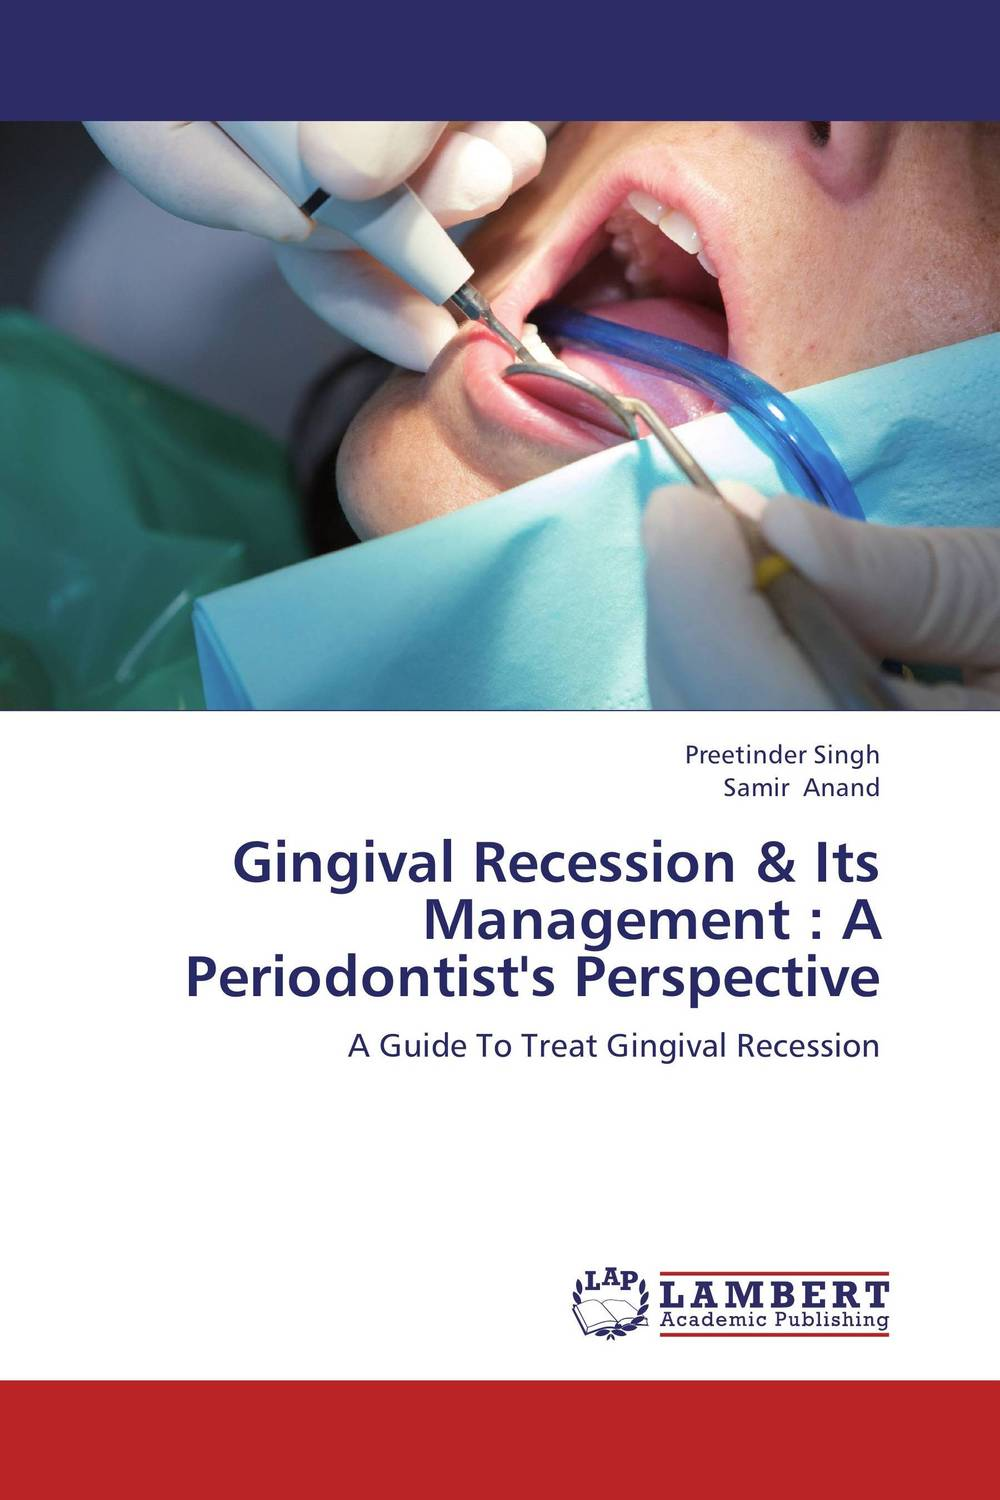 Gingival Recession & Its Management : A Periodontist's Perspective presidential nominee will address a gathering